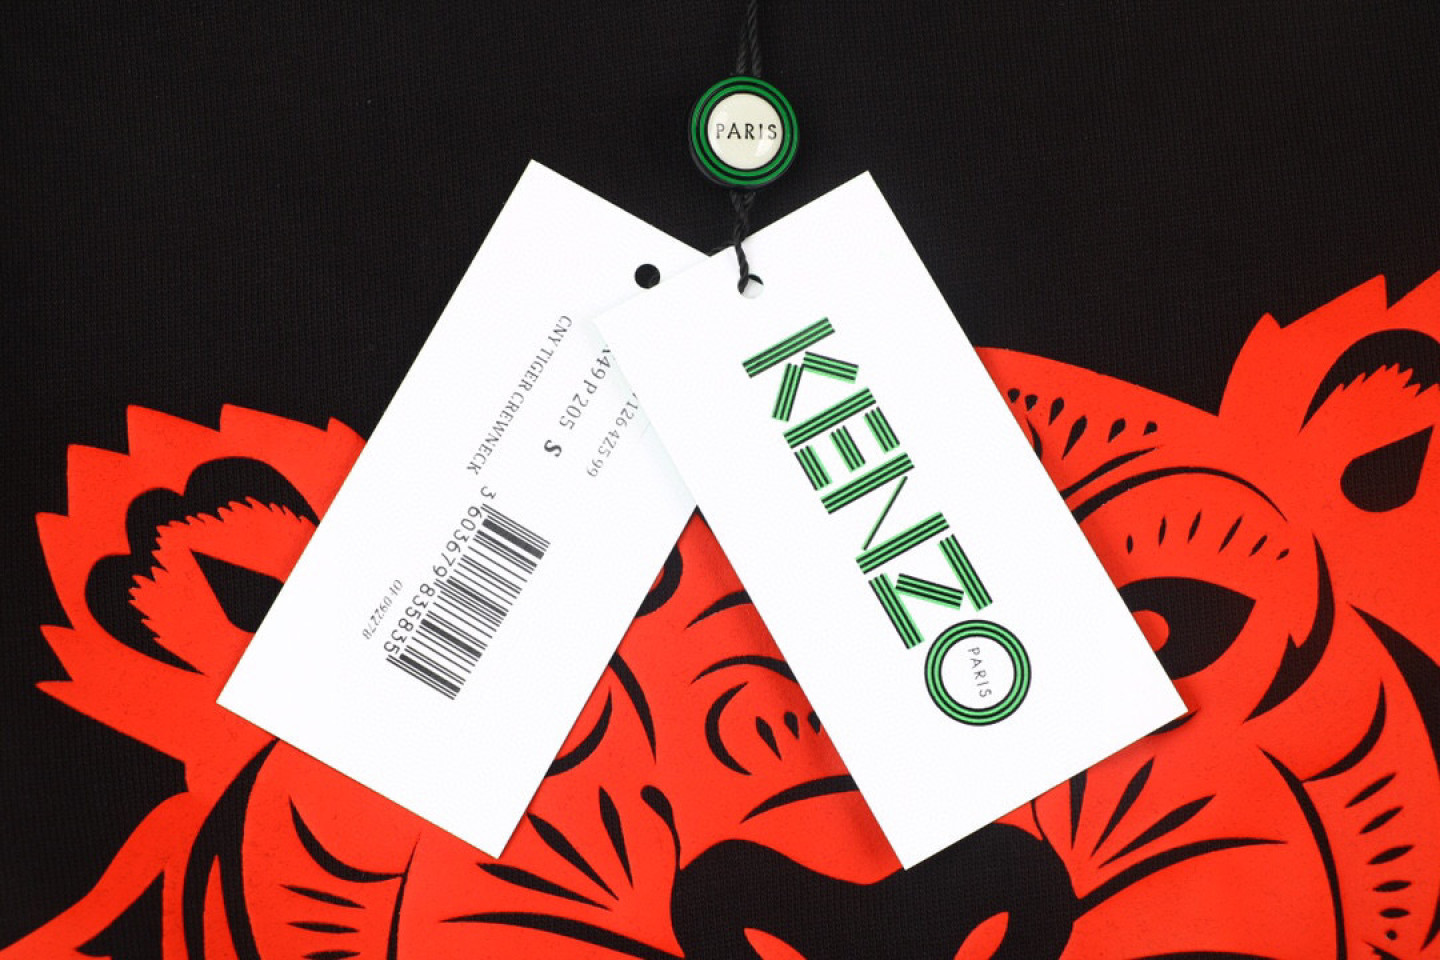 Shirt Kenzo black gold and red tiger head sweater 3 kenzo_black_gold_and_red_tiger_head_sweater_3